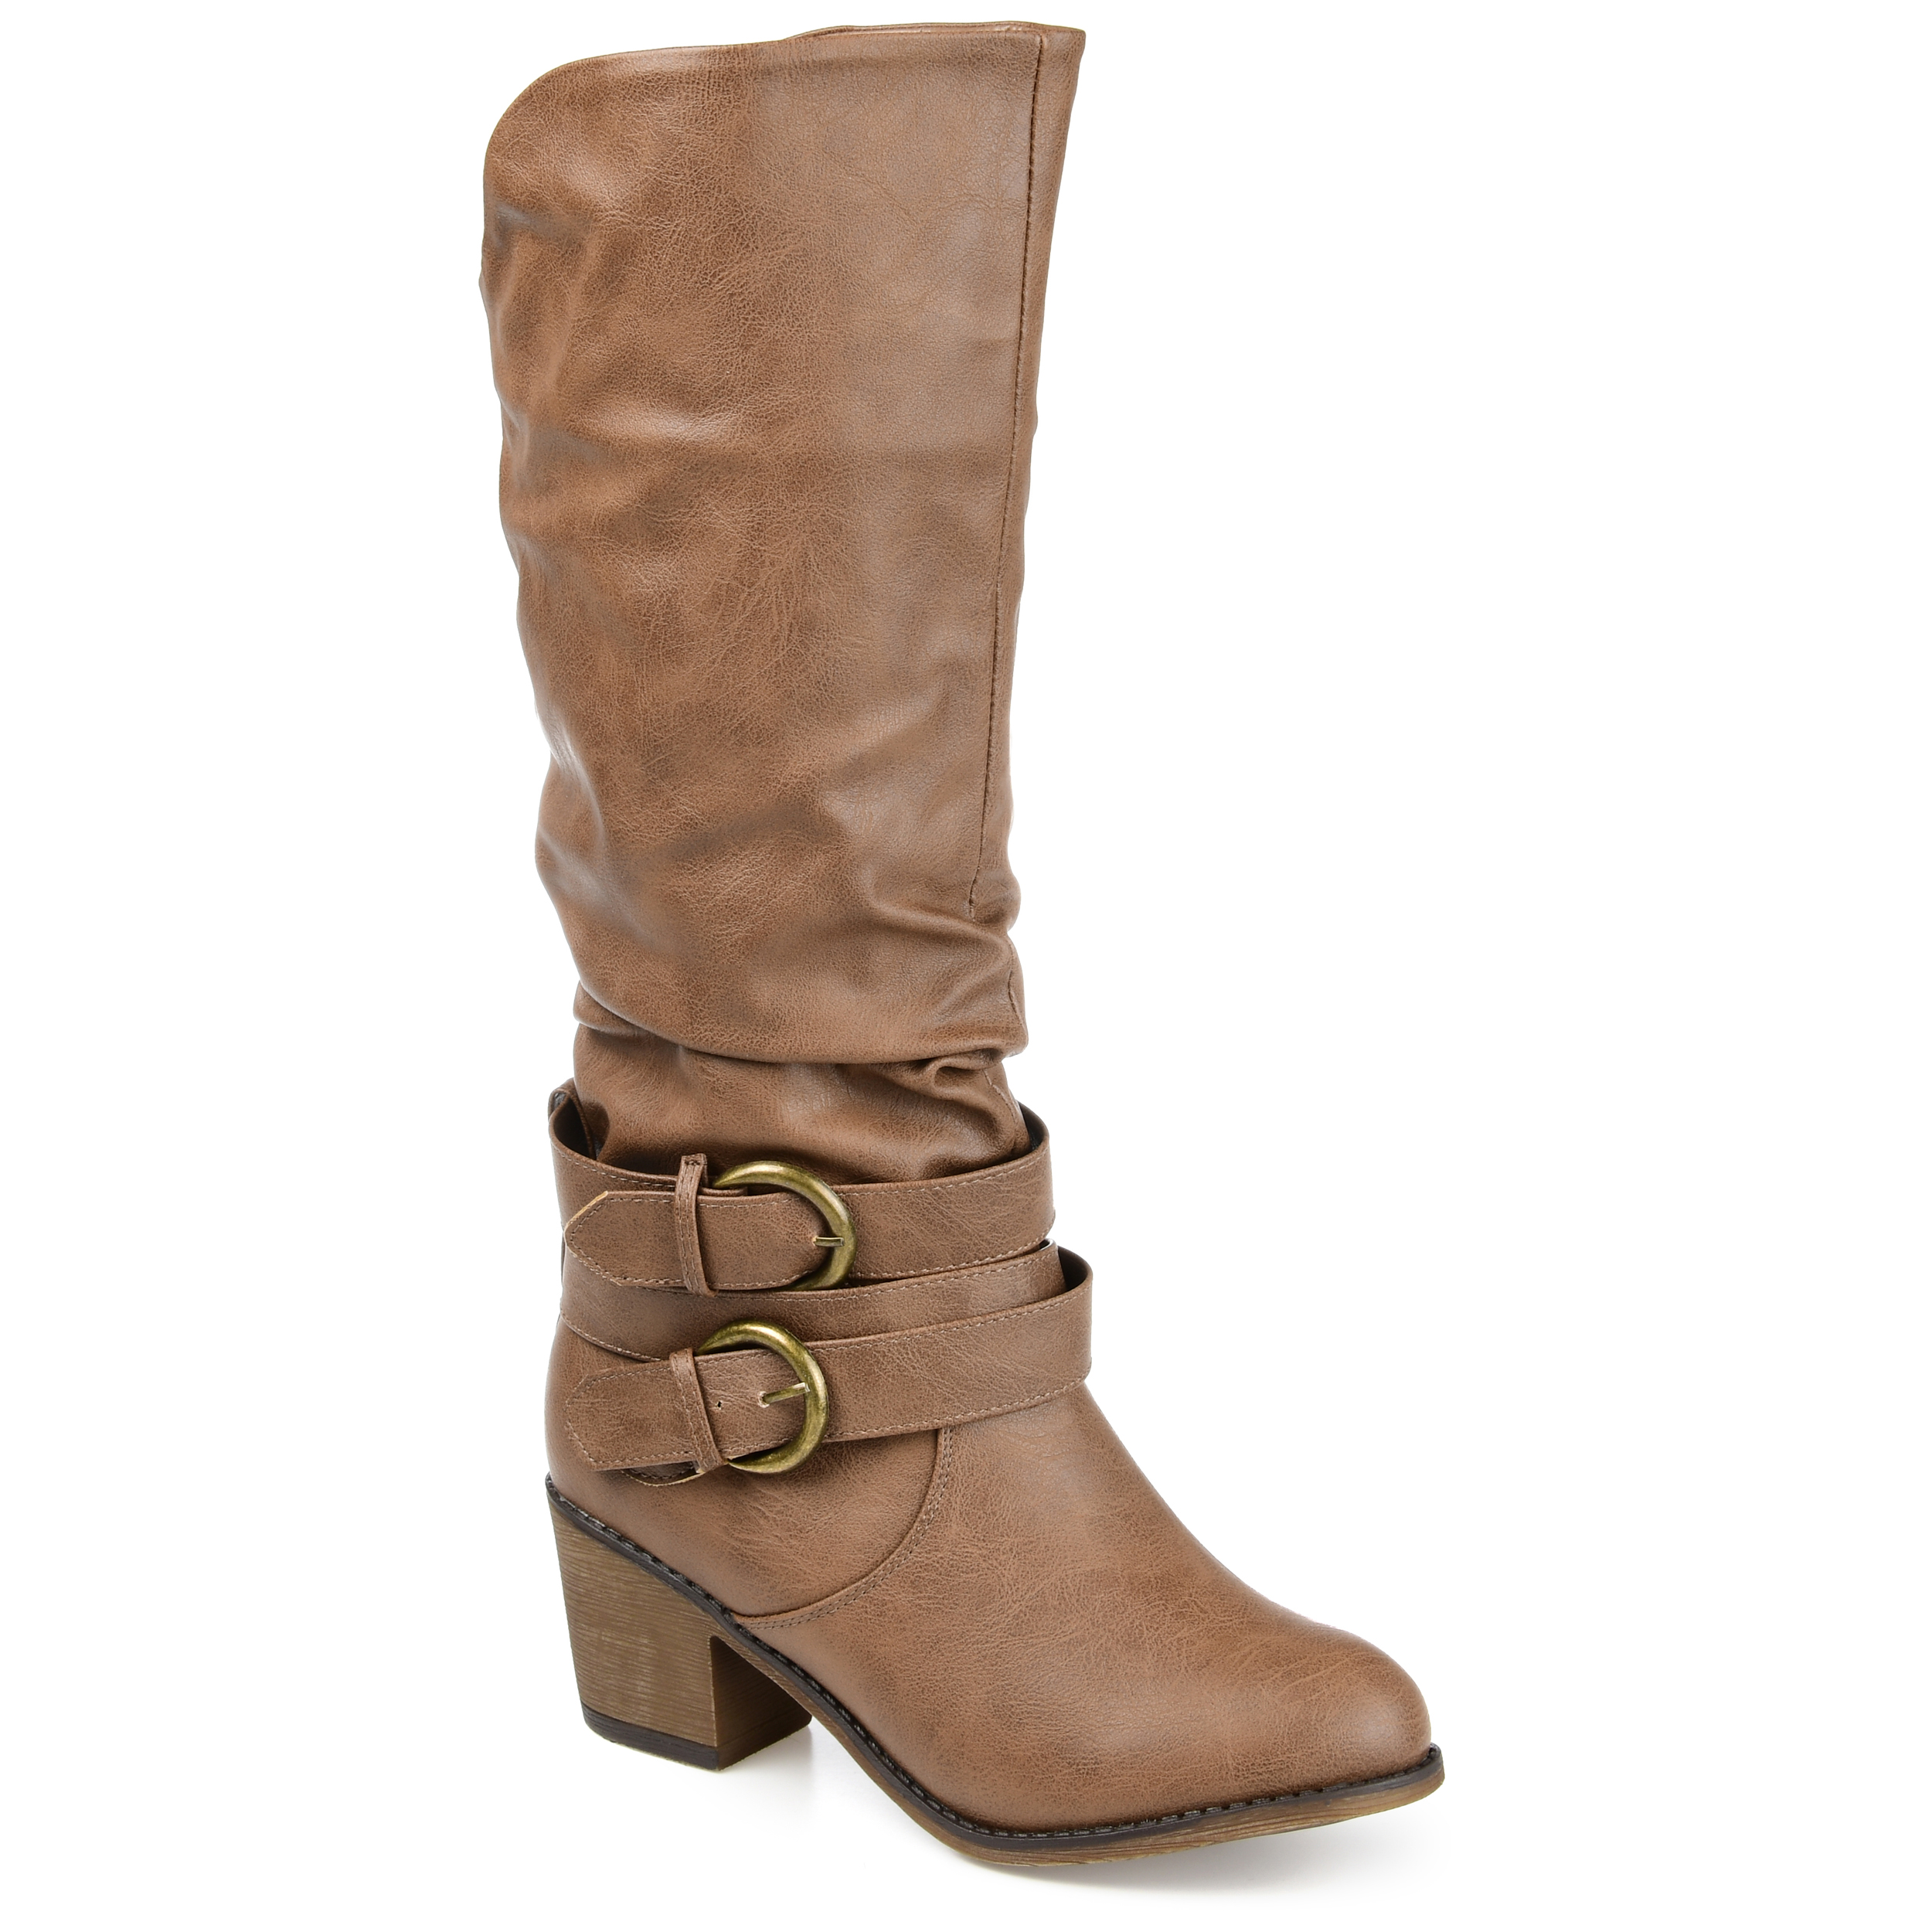 brinley co womens wide calf slouch buckle high heel boots